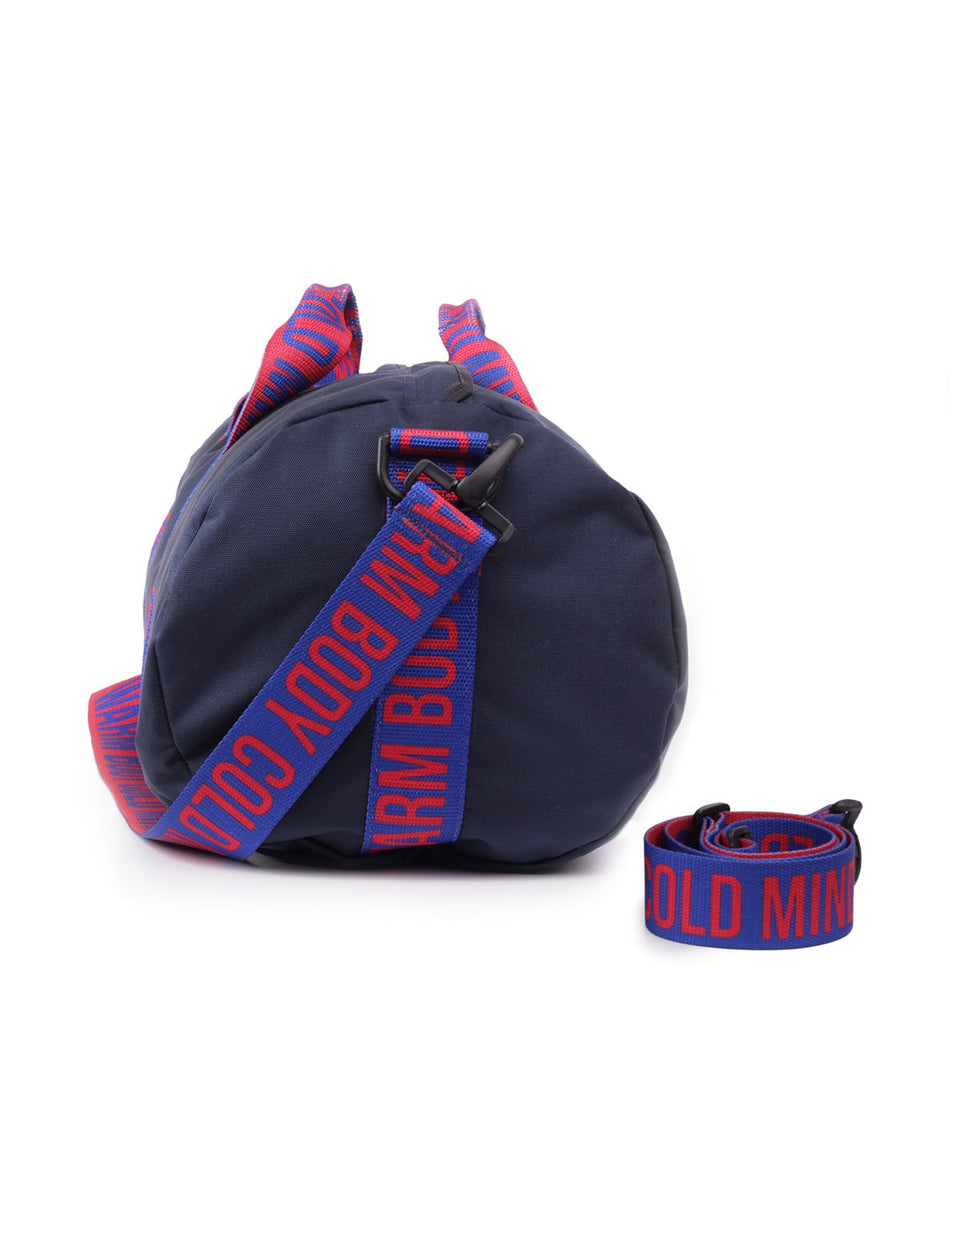 WBCM Training Bag